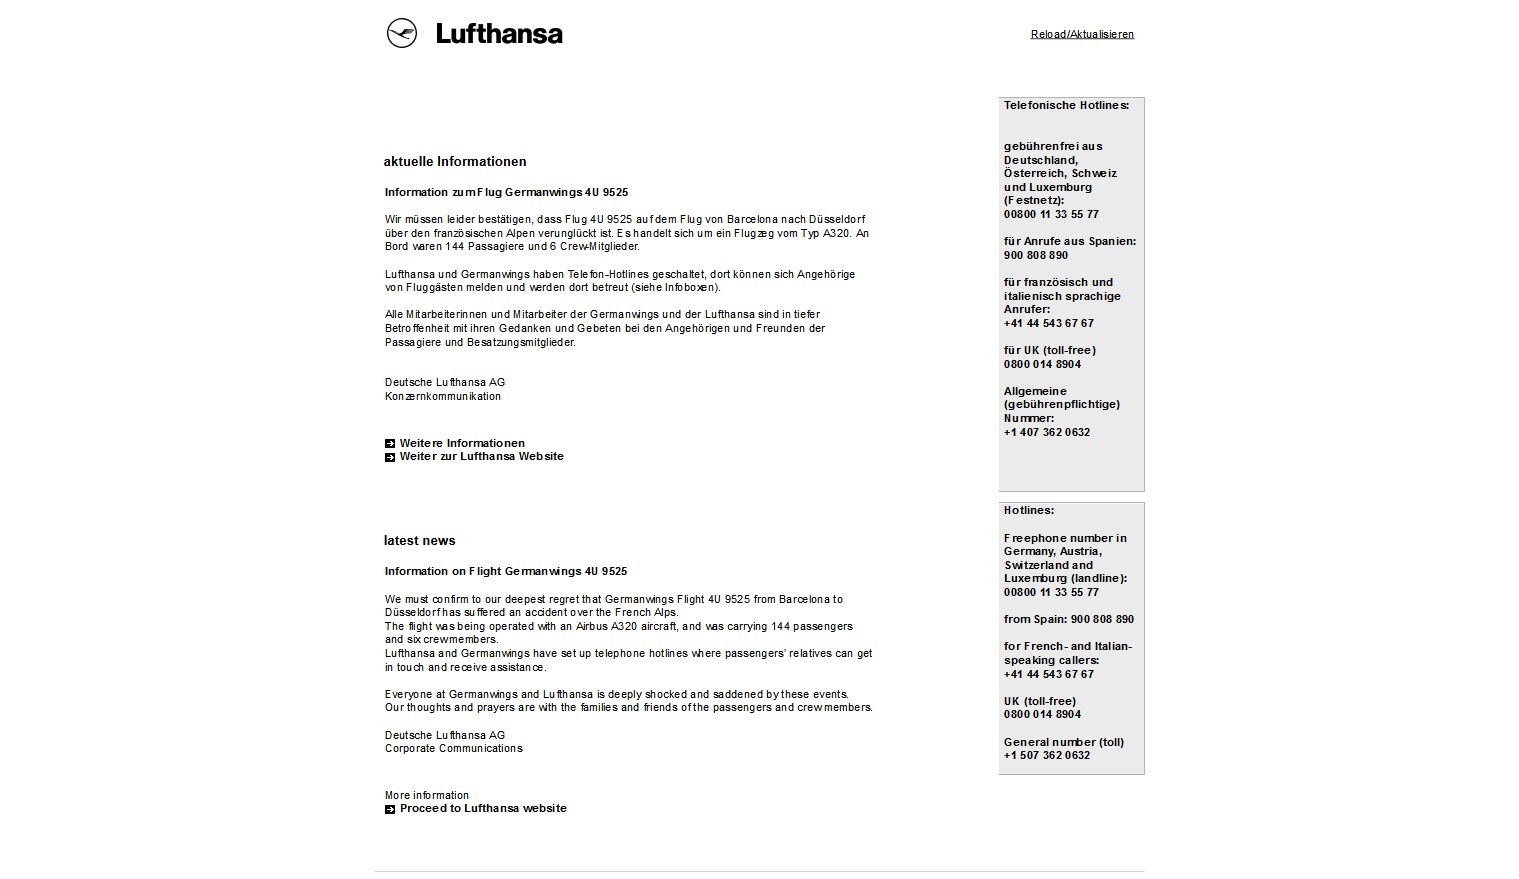 Lufthansa website redirects to this page, a few hours after the crash of flight 4U 9525 from Barcelona to Düsseldorf in the French Alps on March 24th 2015. Lufthansa is the parent company of German Wings.